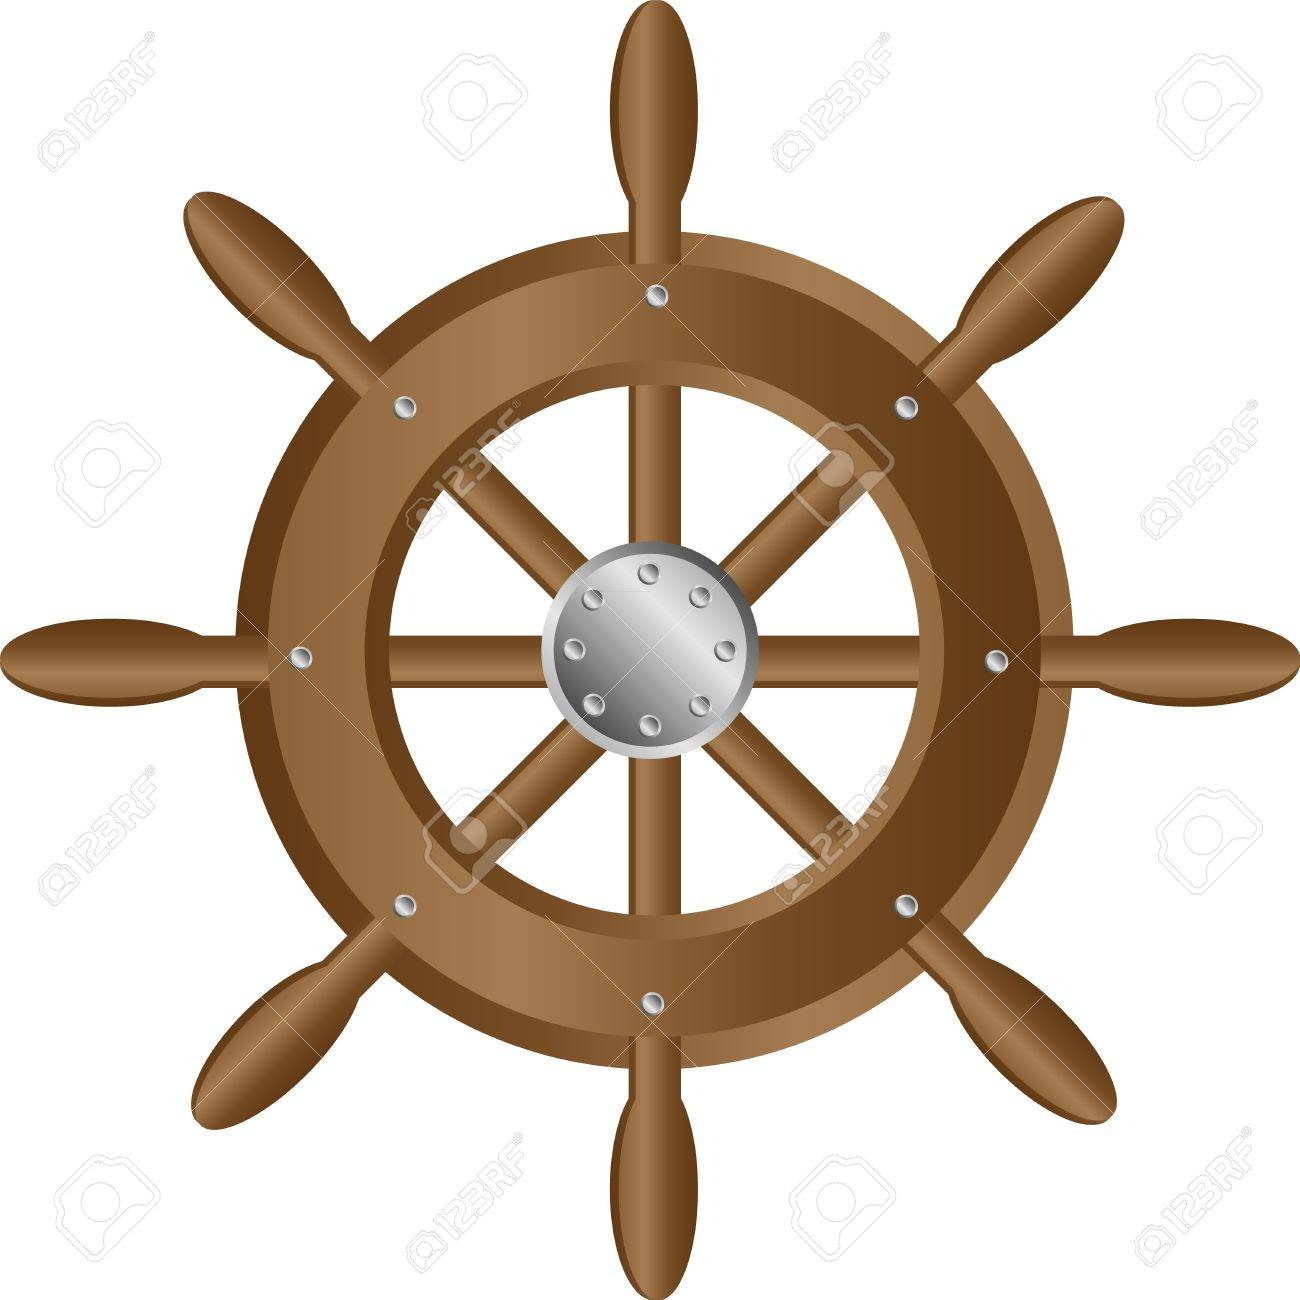 ship steering wheel icon on white background royalty free cliparts vectors and stock illustration image 11237029 ship steering wheel icon on white background